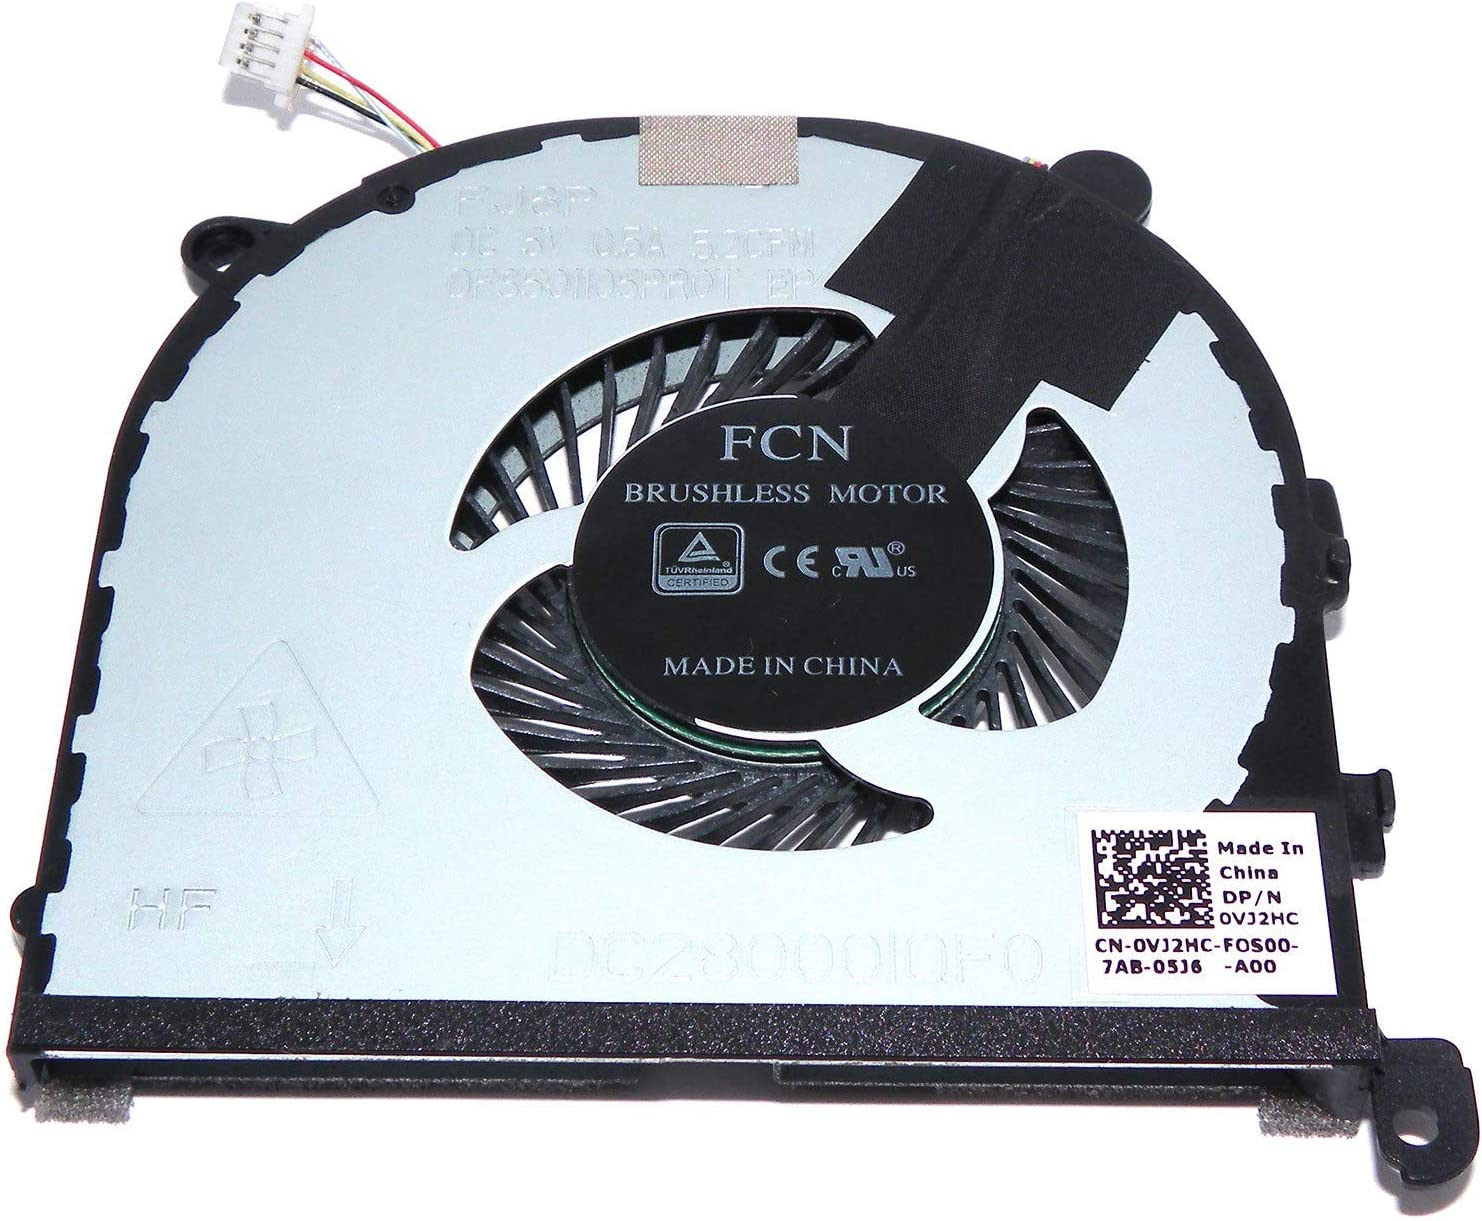 New OEM CPU Cooling Fan for DELL XPS 15 9560 P56F DC28000IQF0 VJ2HC (Left)